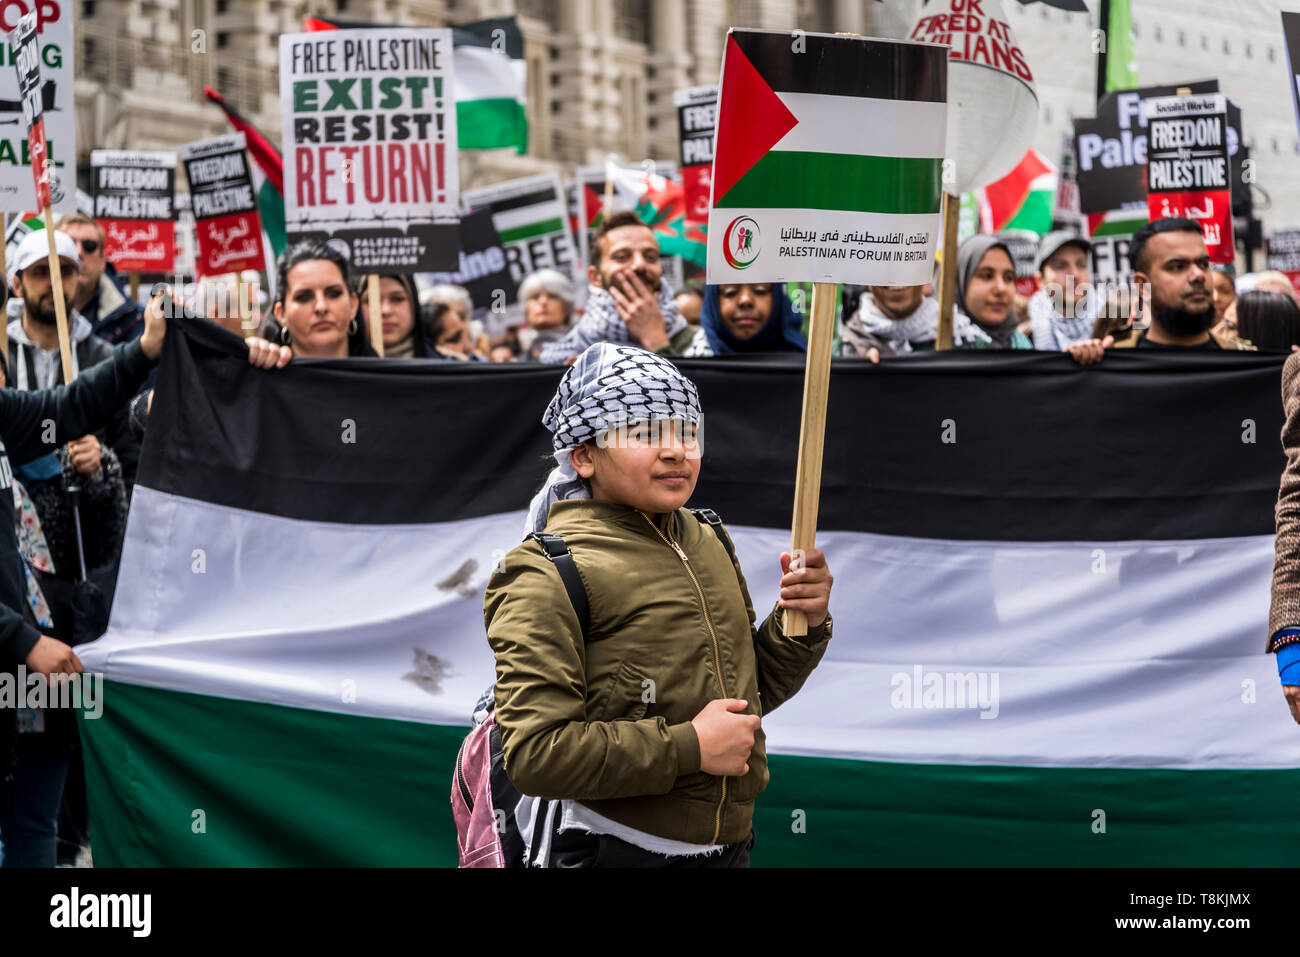 National Demonstration for Palestine, Nine year old Palestinian girl carrying a banner, London, UK 11/05/2019 - Stock Image